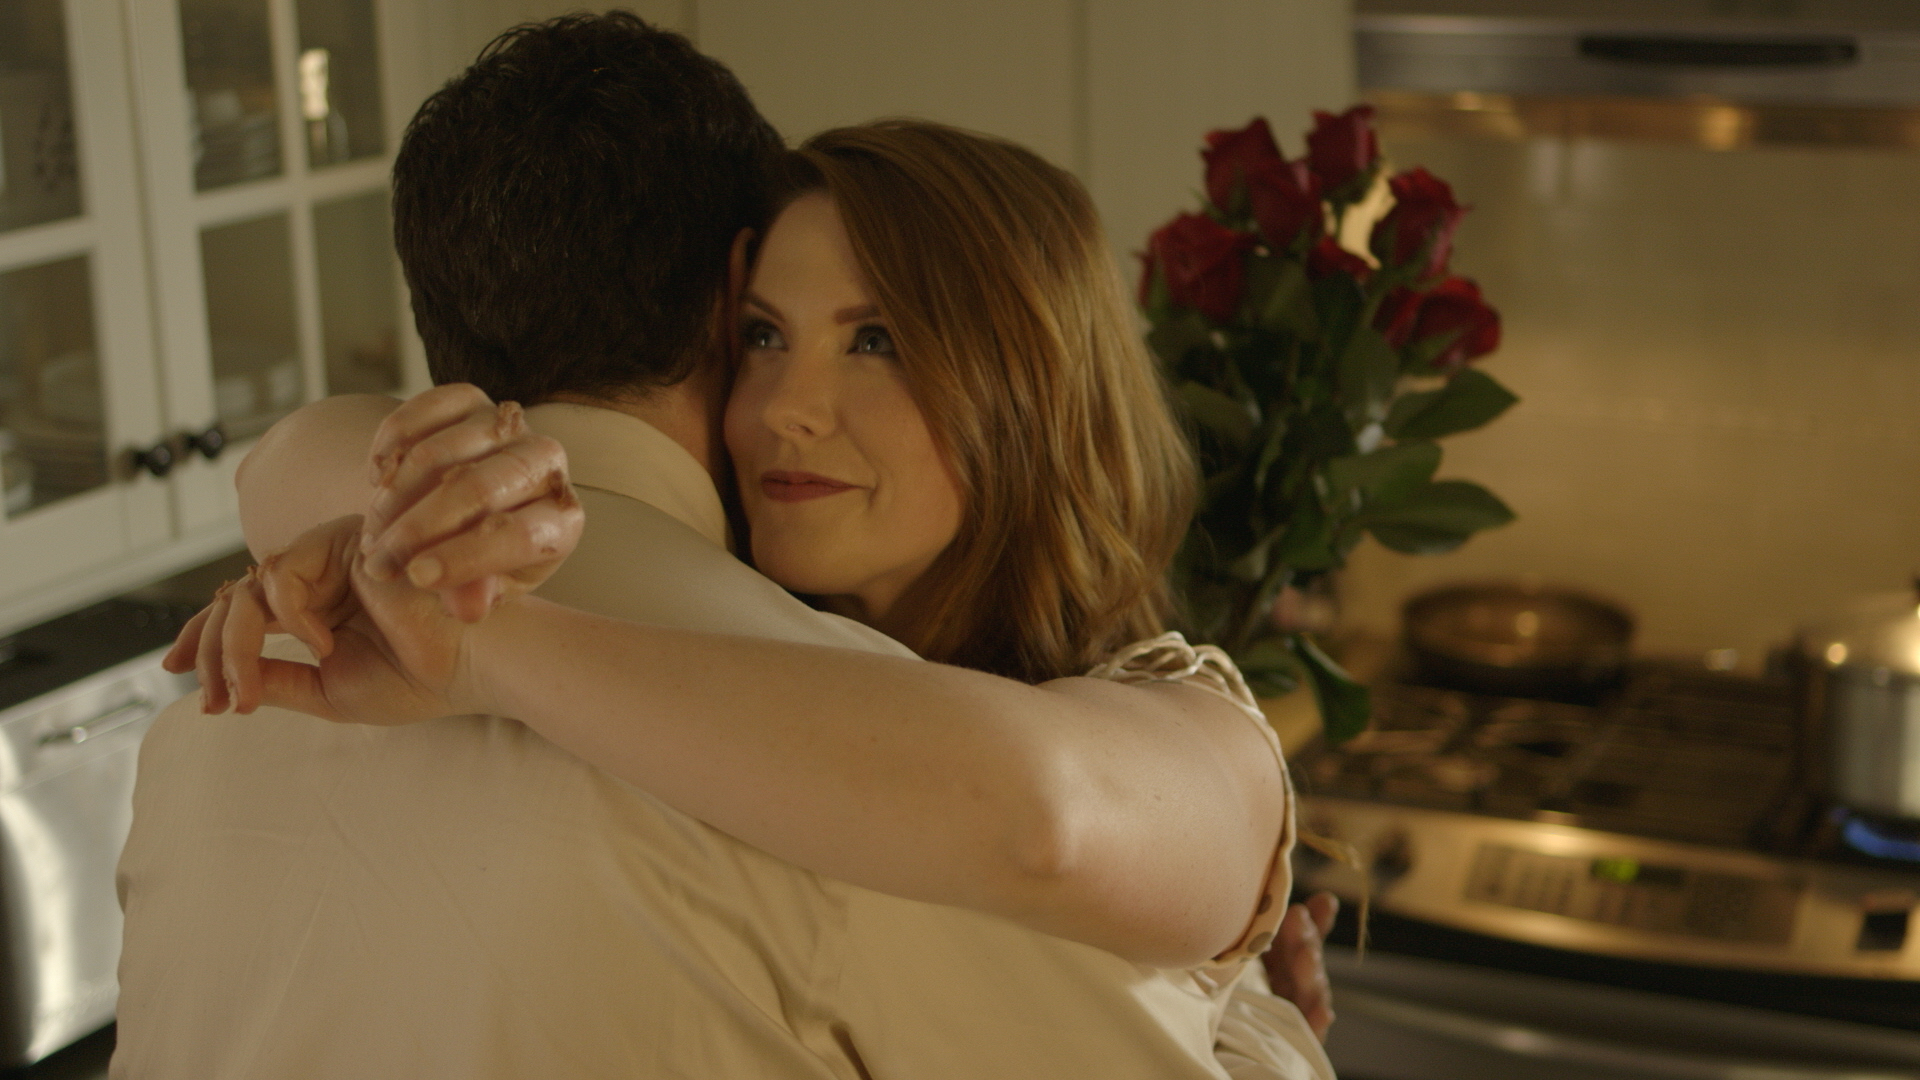 screen grab (kitchen hug).jpg